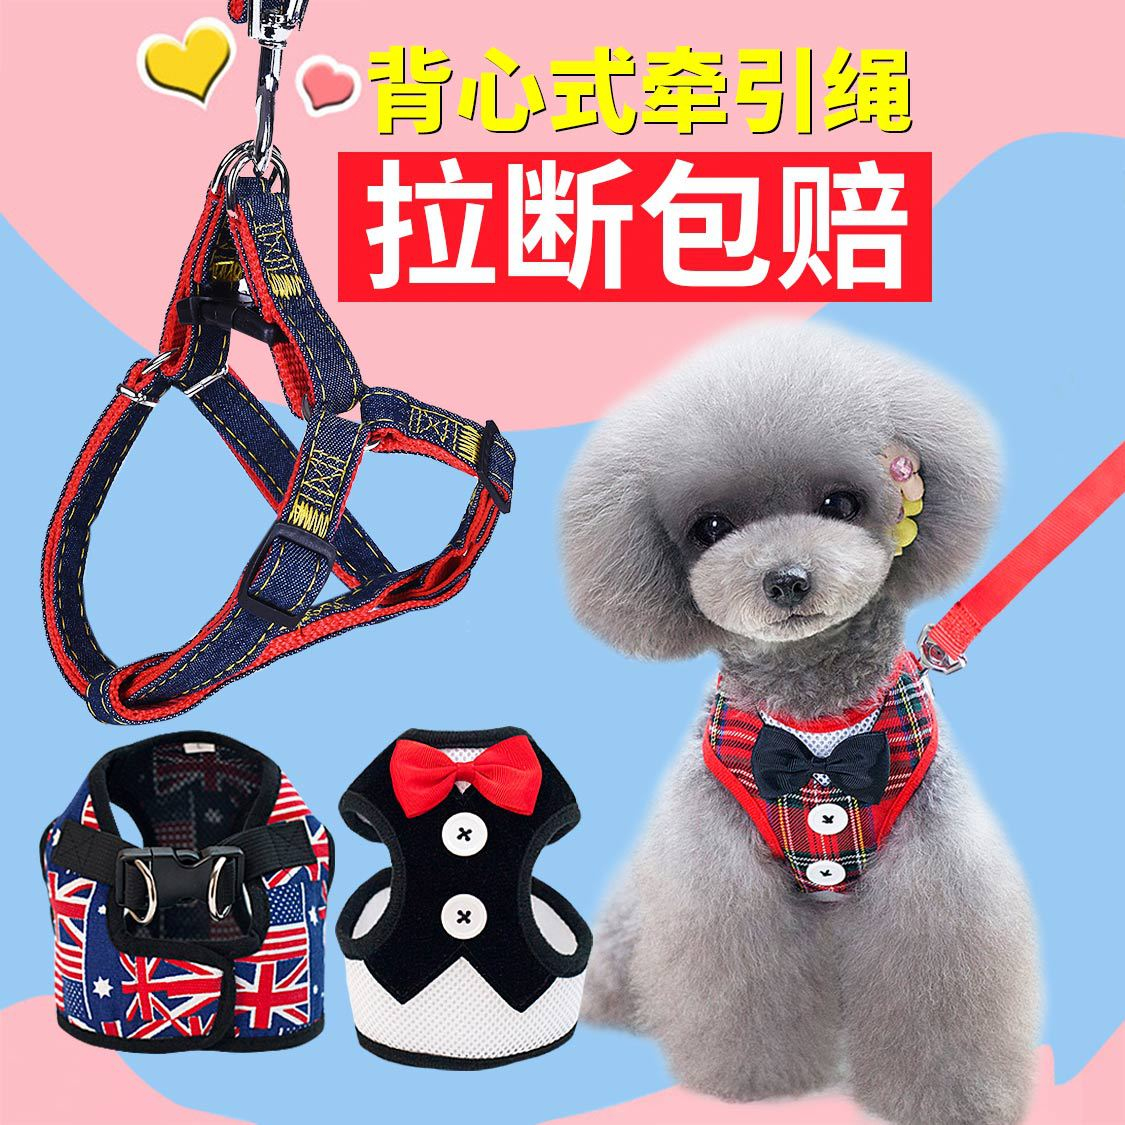 Cat Hand Holding Rope Cat Walker Useful Product Dog Anti-Bite French Bulldog Labrador Puppy Dog Small Dogs Rope